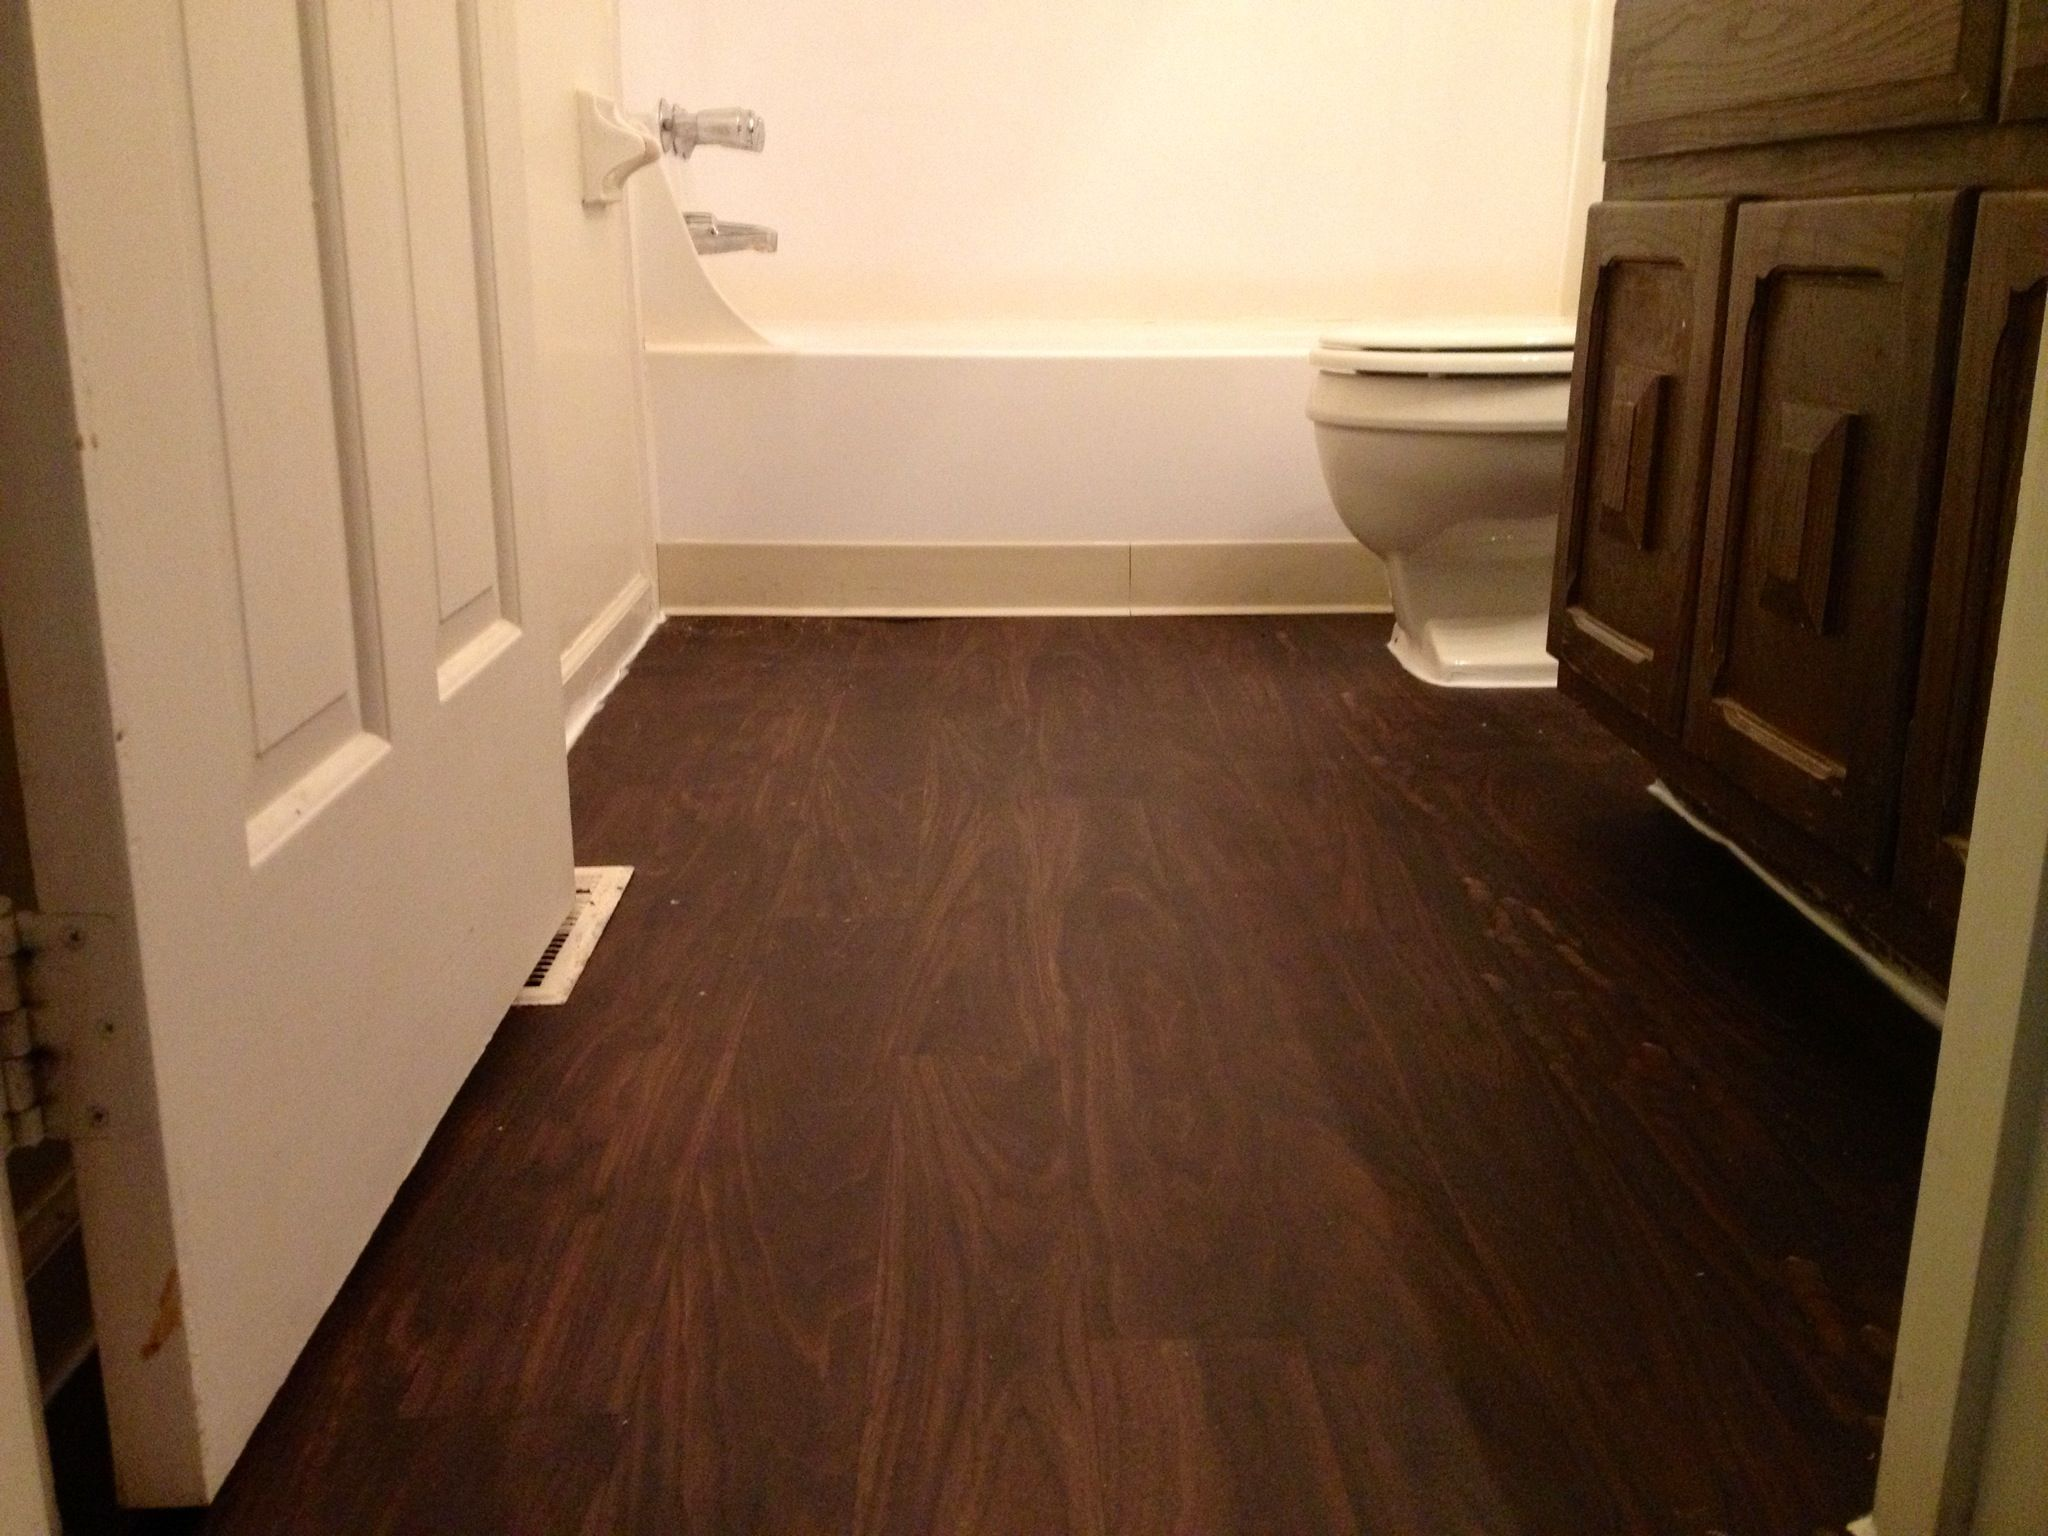 Vinyl Bathroom Floors Vinyl Bathroom Flooring Bathroom Remodel Pinterest Vinyls